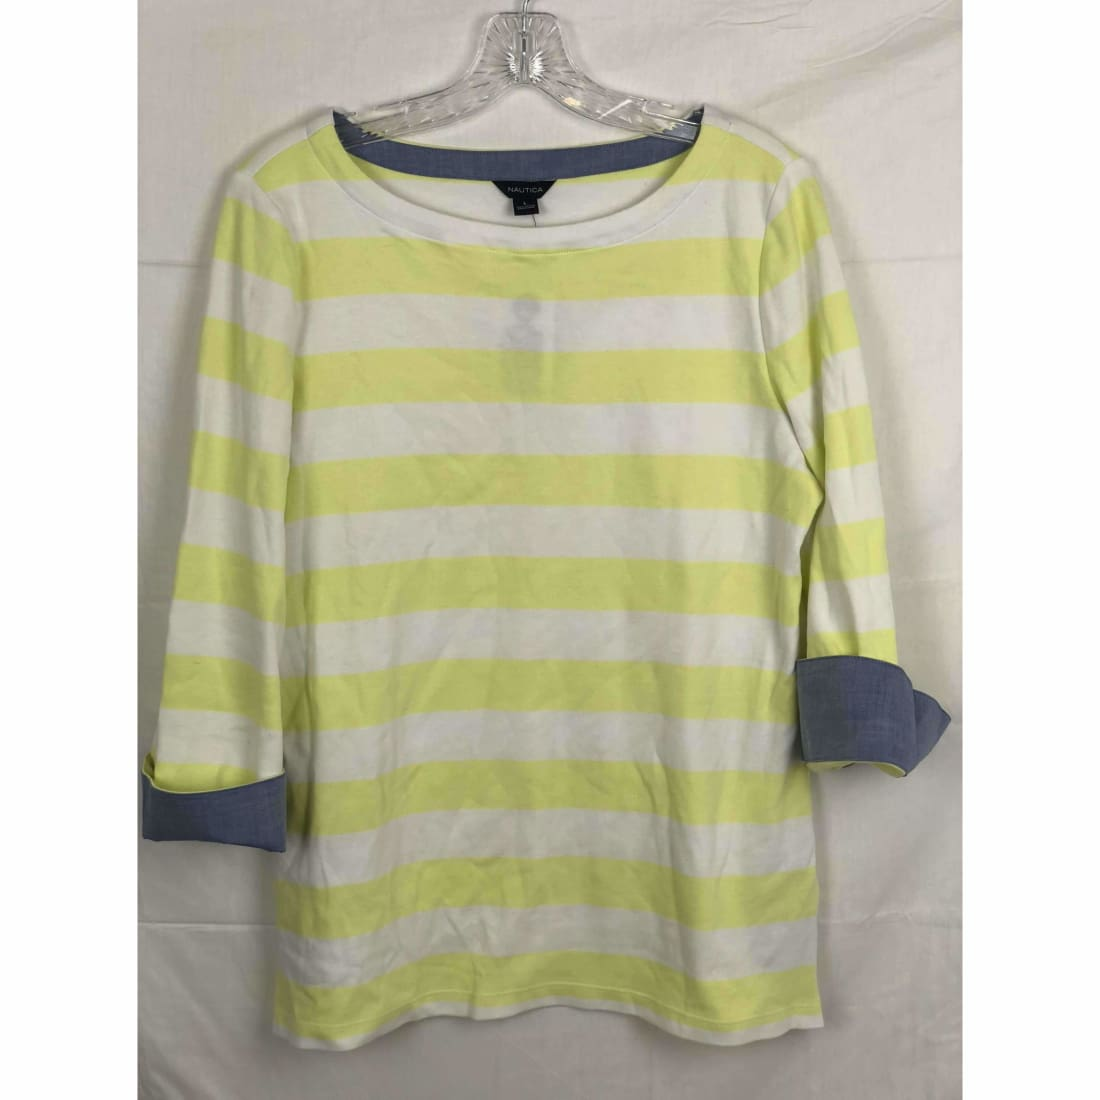 Nautica Womens Chambray 3/4 Sleeve Top L / Pale Lime Tops & Blouses